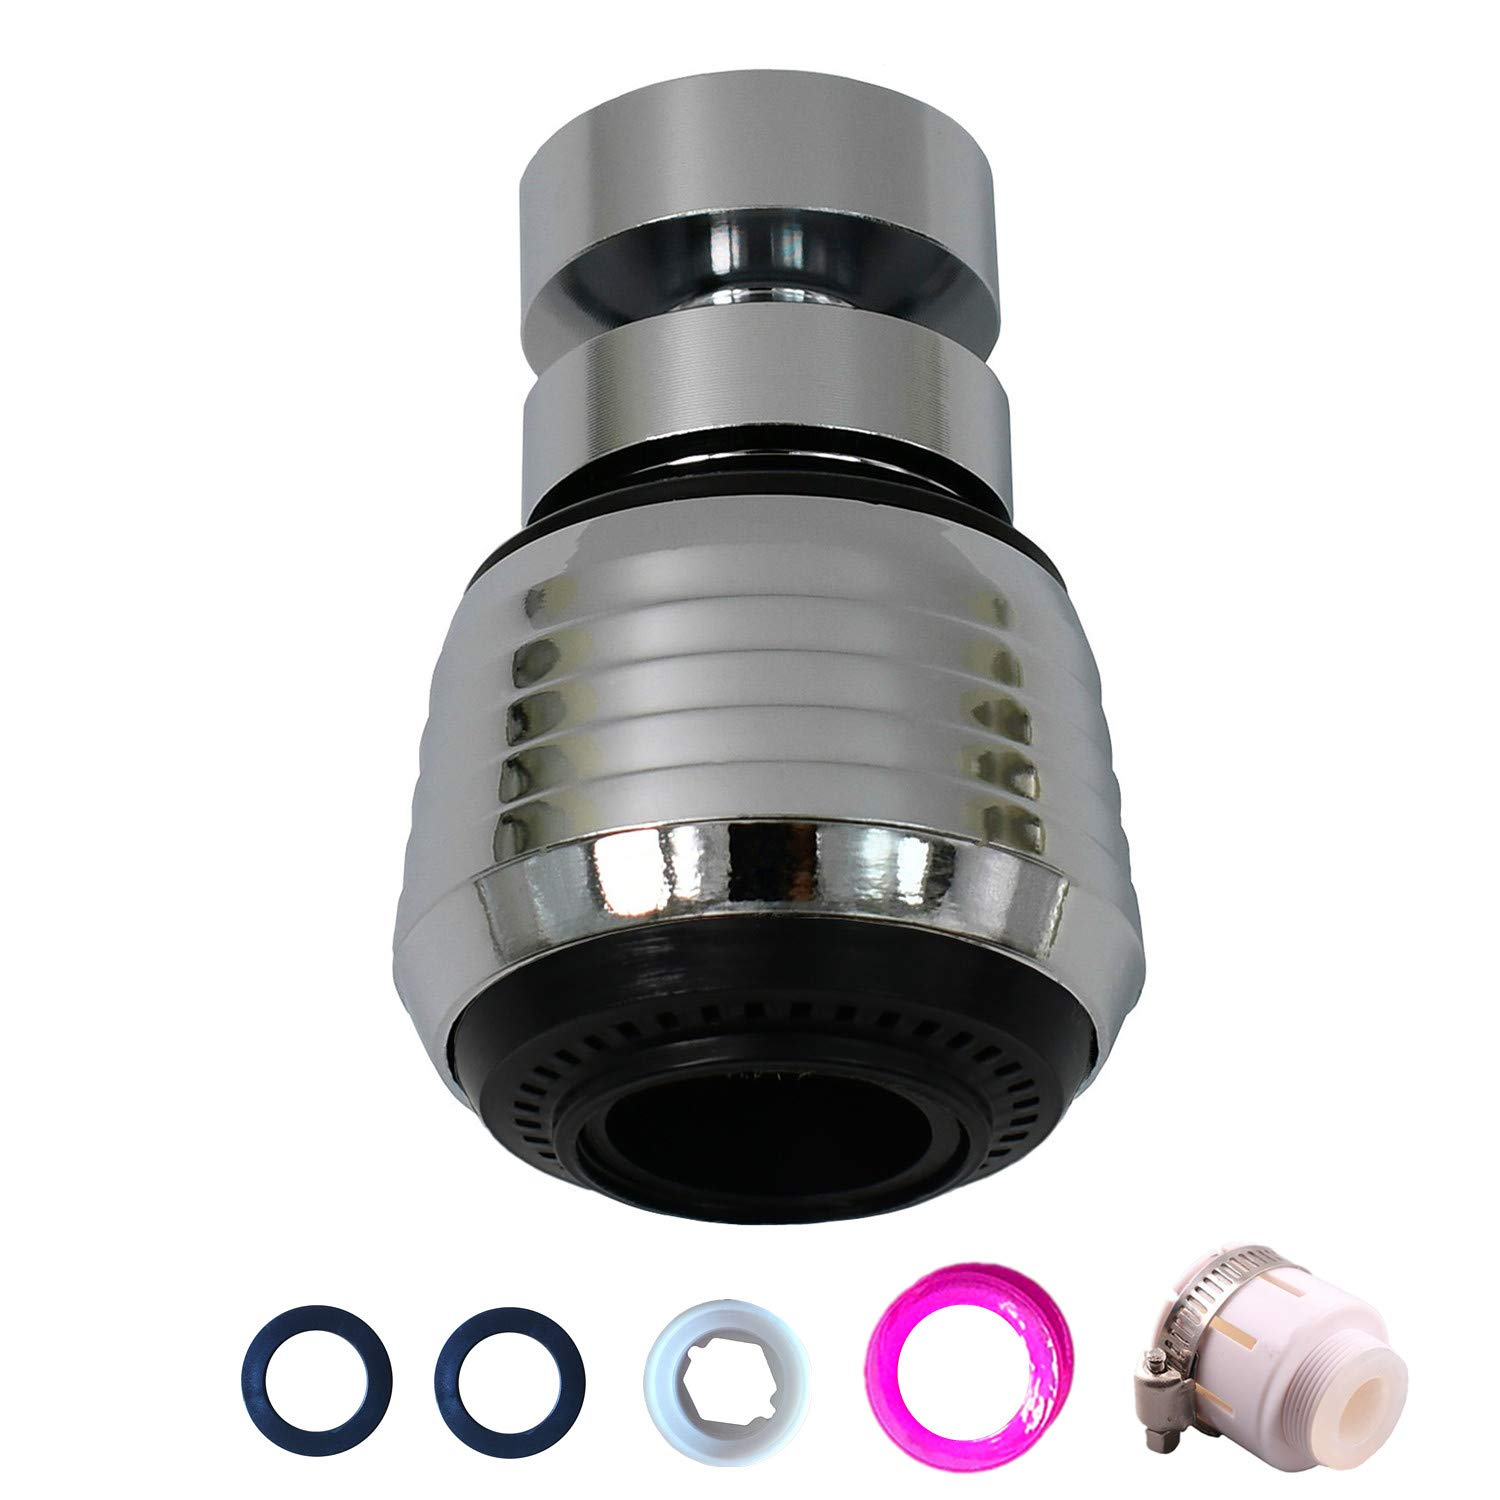 Faucet Sprayer Head Attachment 360 Aerator Extension Abs And Stainless Steel Adaptor Polished Chrome For Kitchen Sink Bathroom Taps Cold Hot Water Black